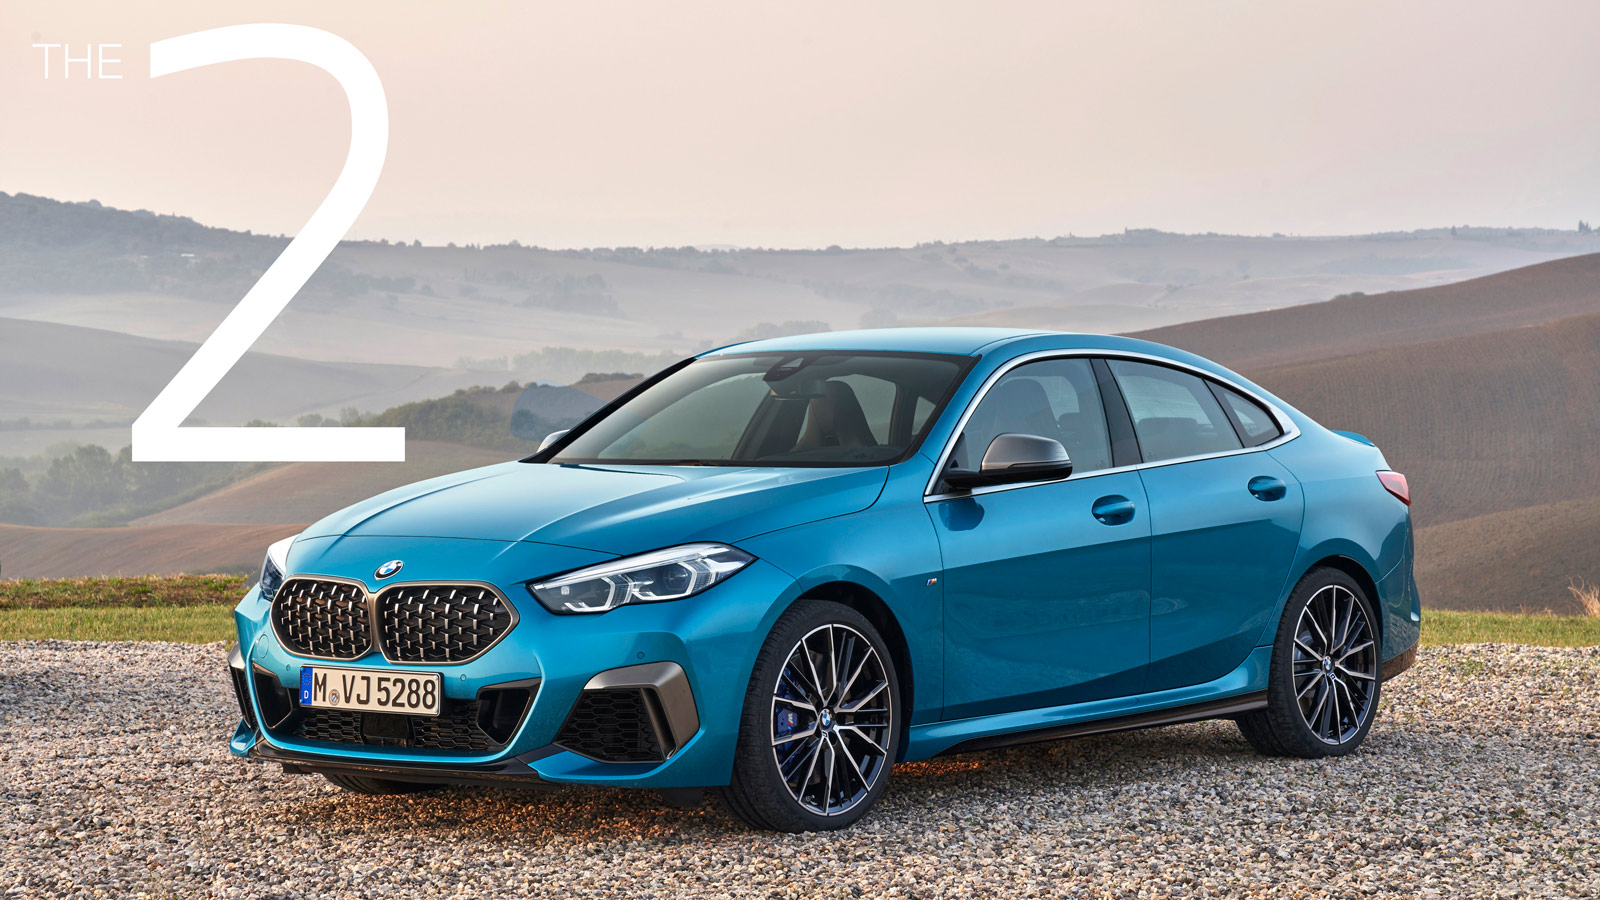 Image of the BMW 2 Series GC